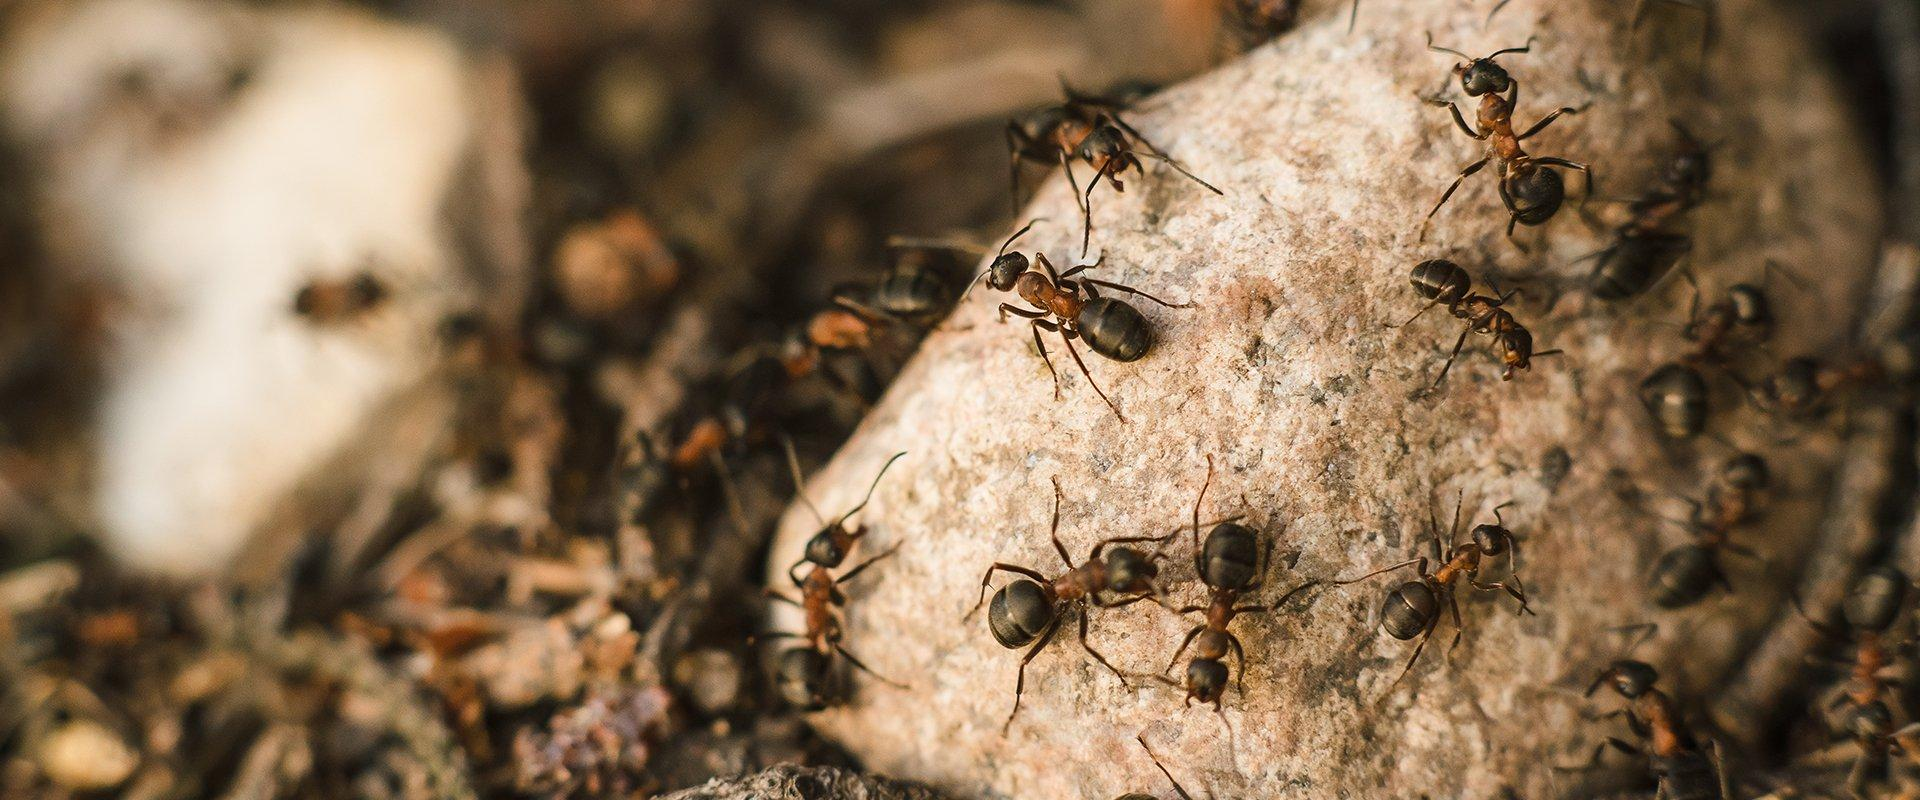 carpenter ants crawling on the ground outside of a home